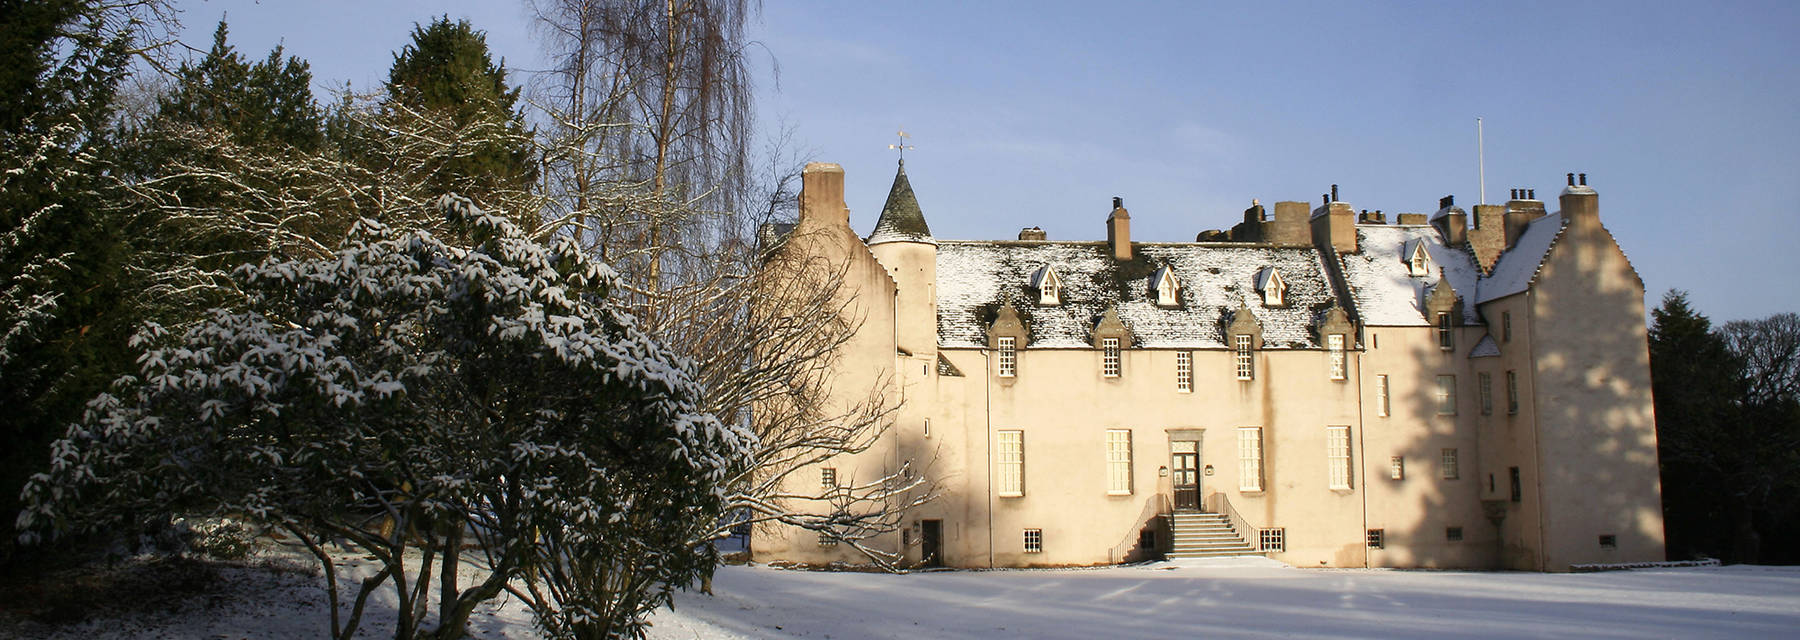 Exterior of Drum Castle in the snow